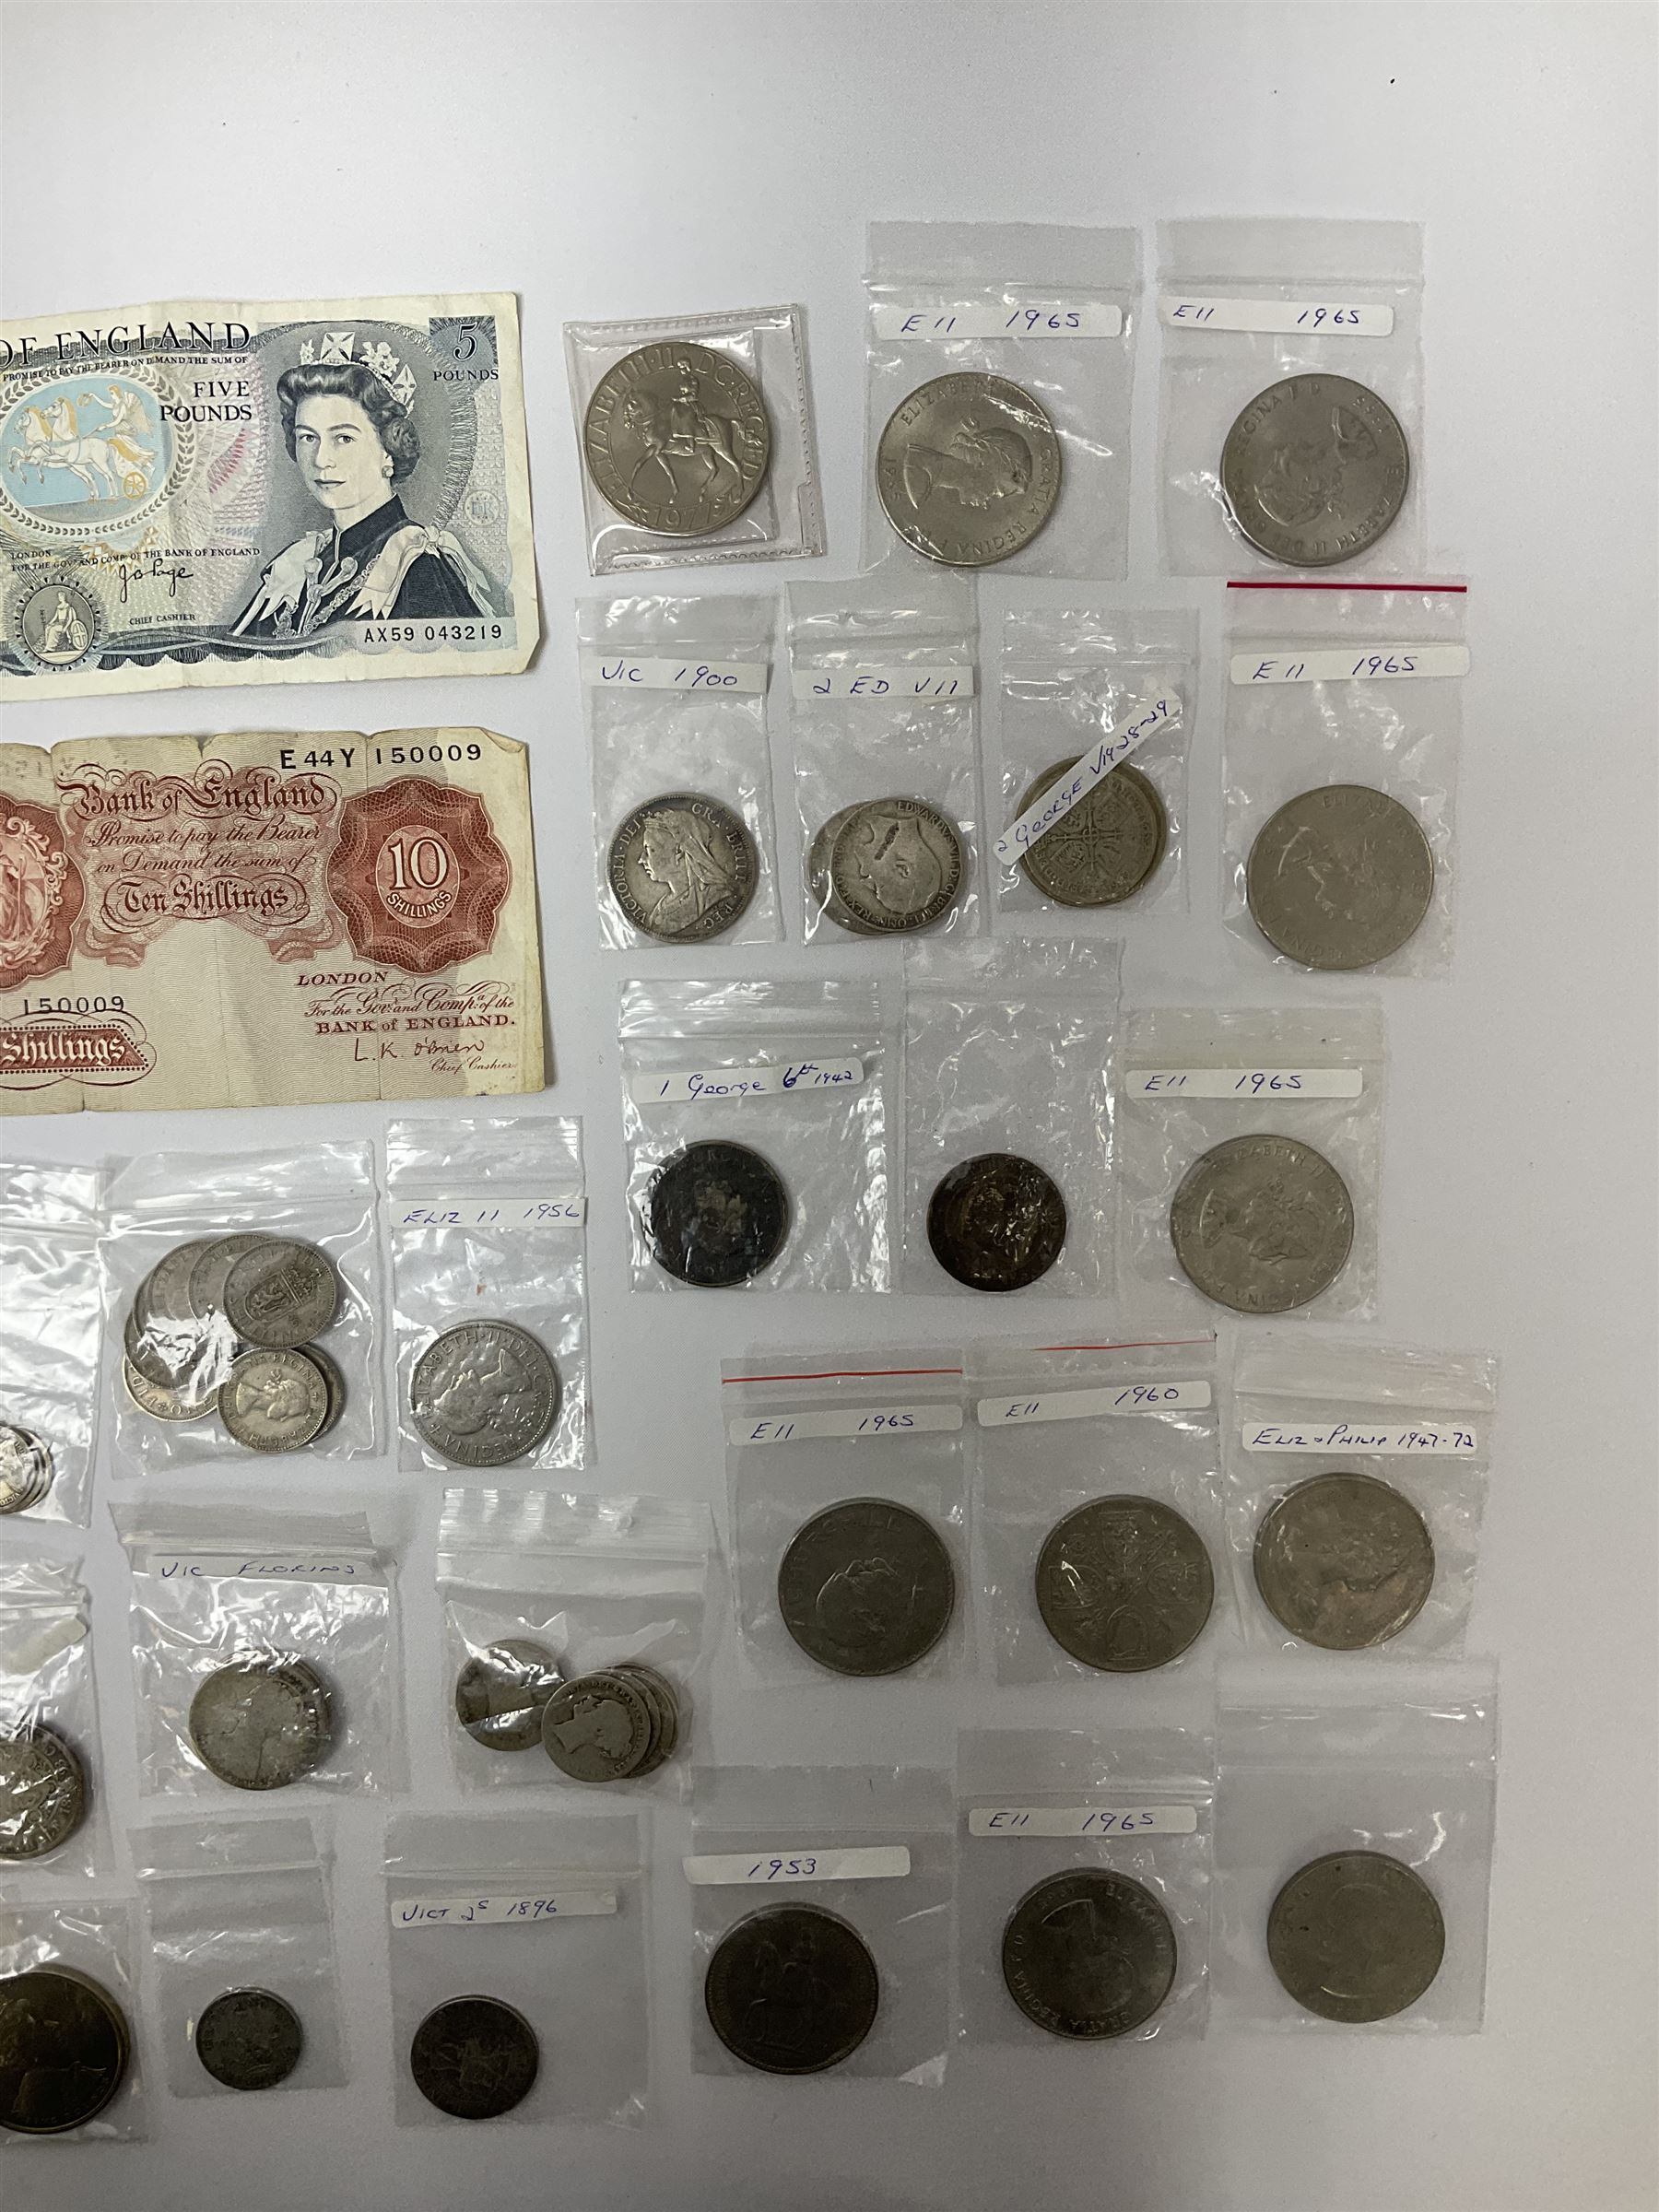 Mostly Great British coins and banknotes including Queen Victoria Gothic florins - Image 3 of 3